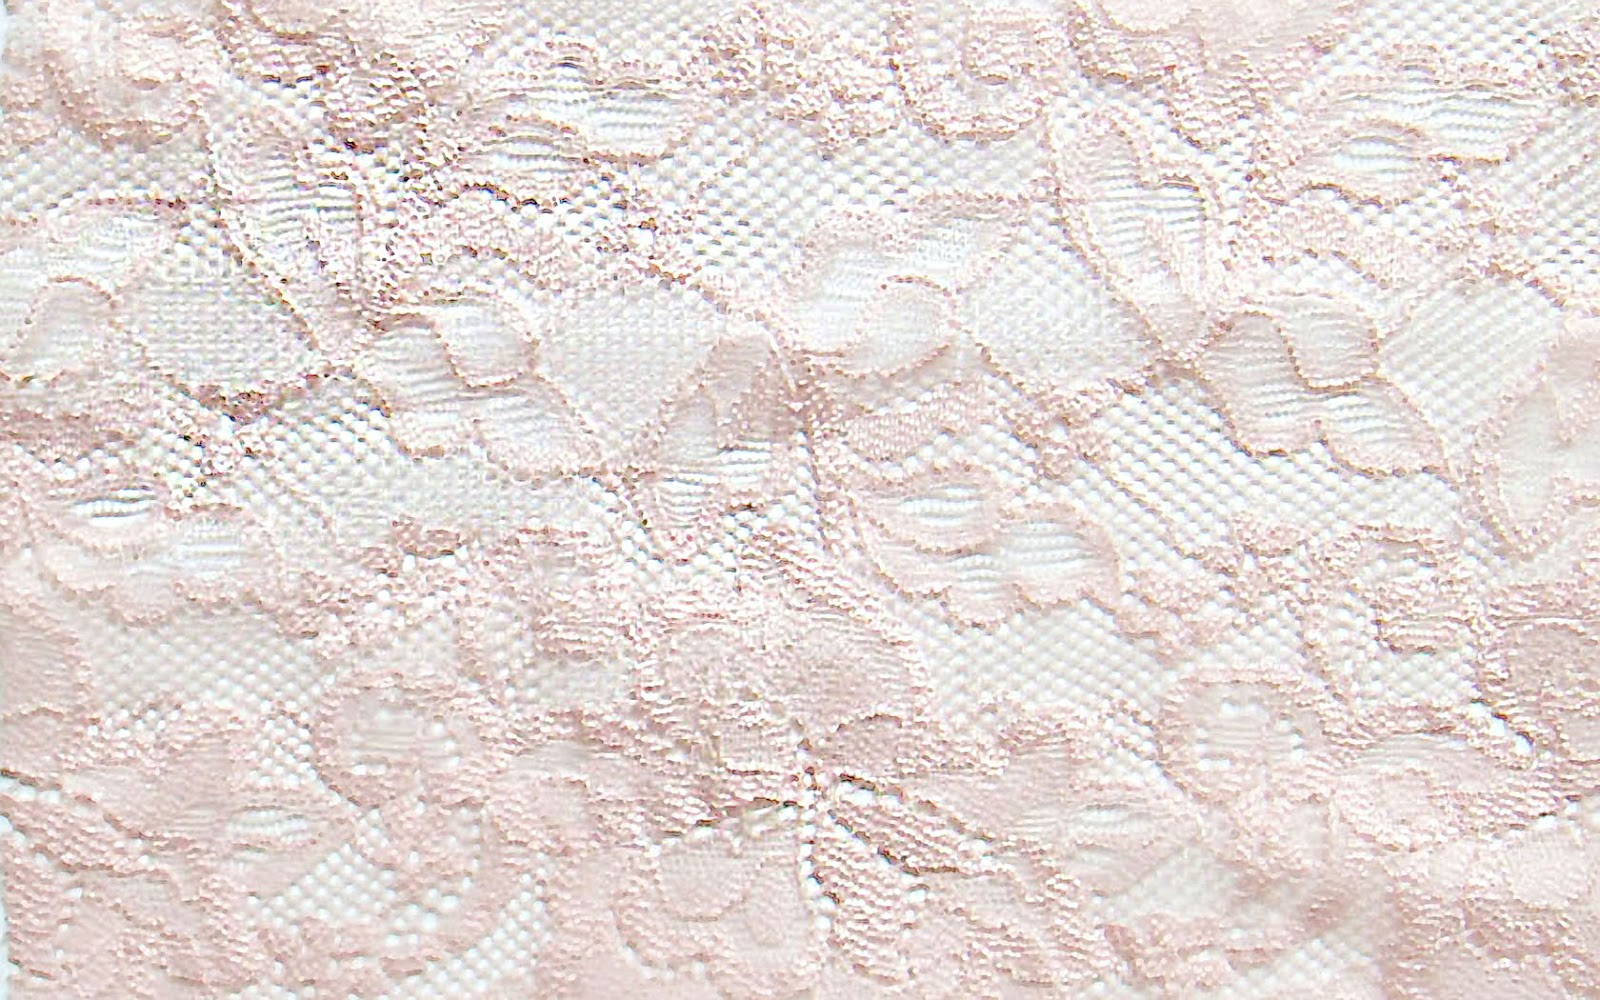 93365 11 free lace tumblr backgrounds hd wallpapers hd images 93365 11 free lace tumblr backgrounds voltagebd Gallery